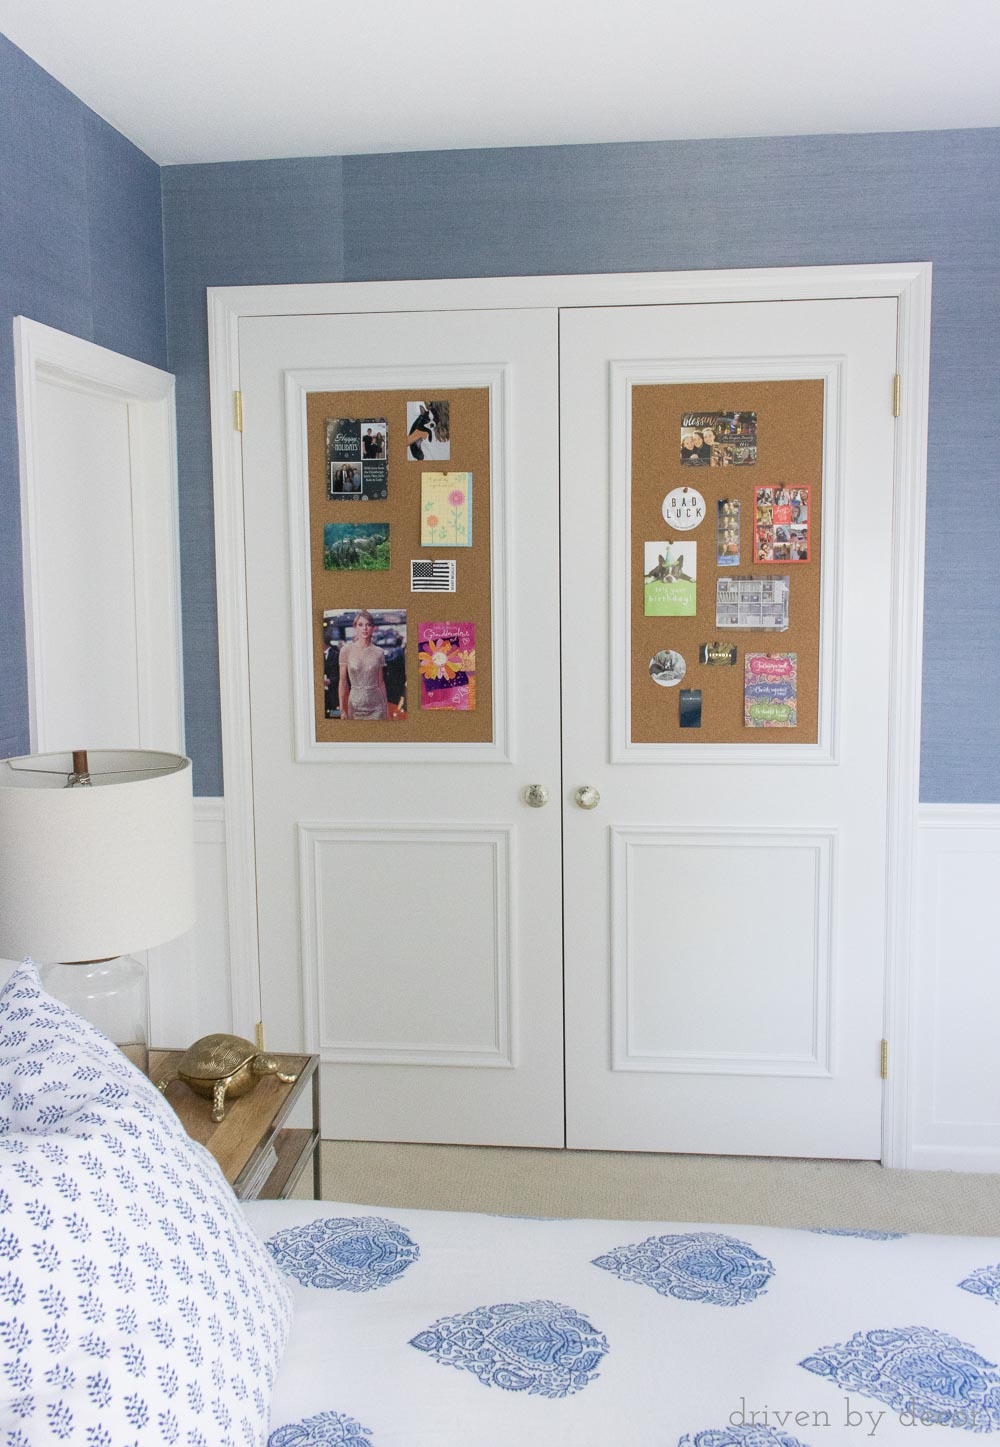 Molding and cork added to flat closet doors to create framed bulletin boards!